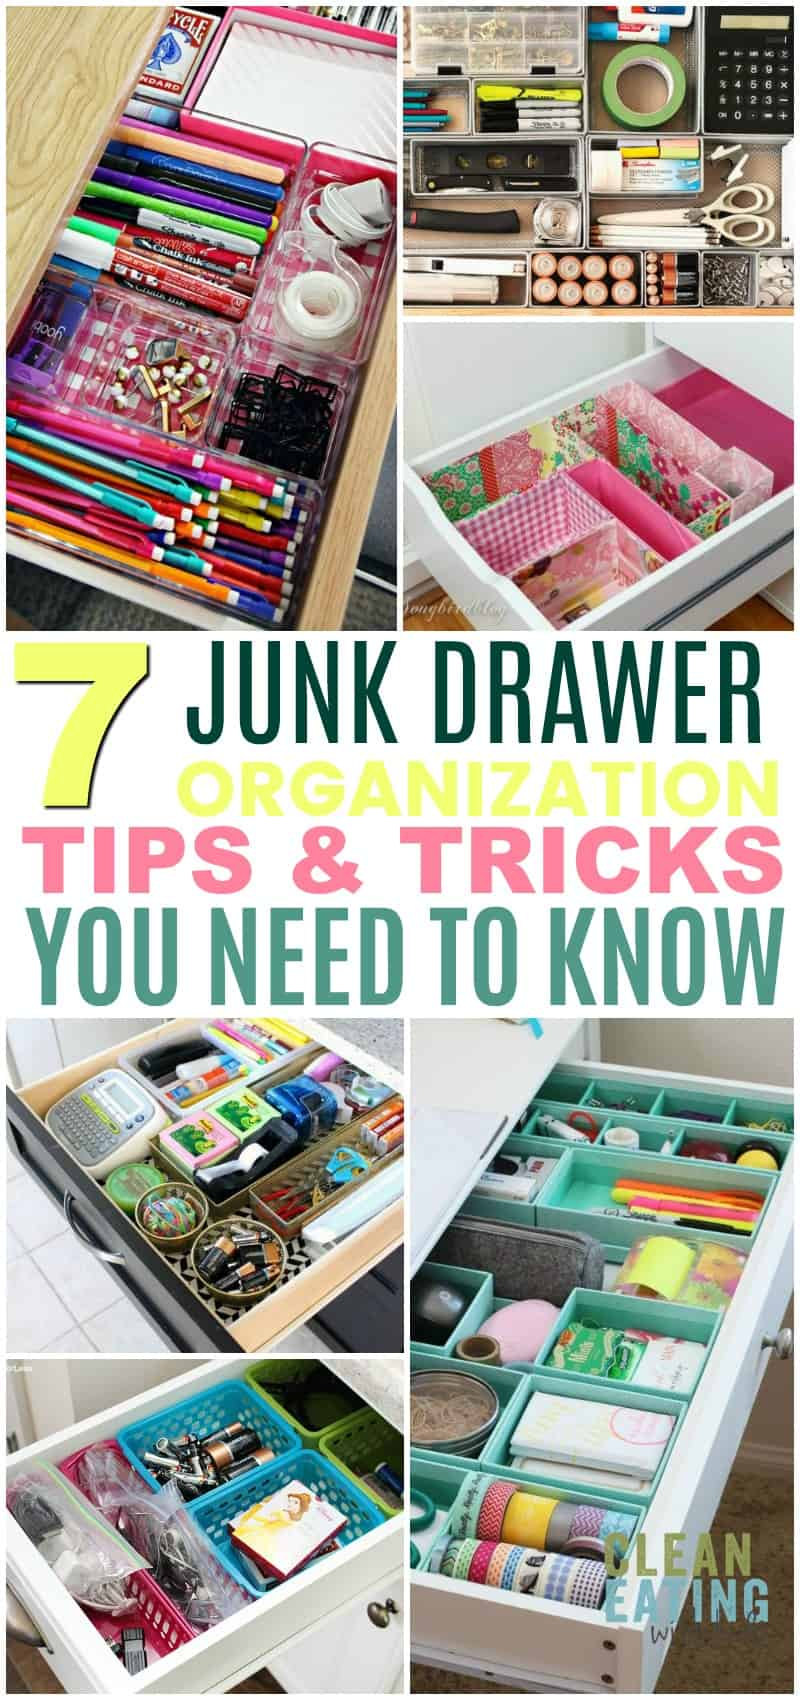 I LOVE these 7 Tips for organizing your junk drawer! I won't be embarrassed about it anymore!